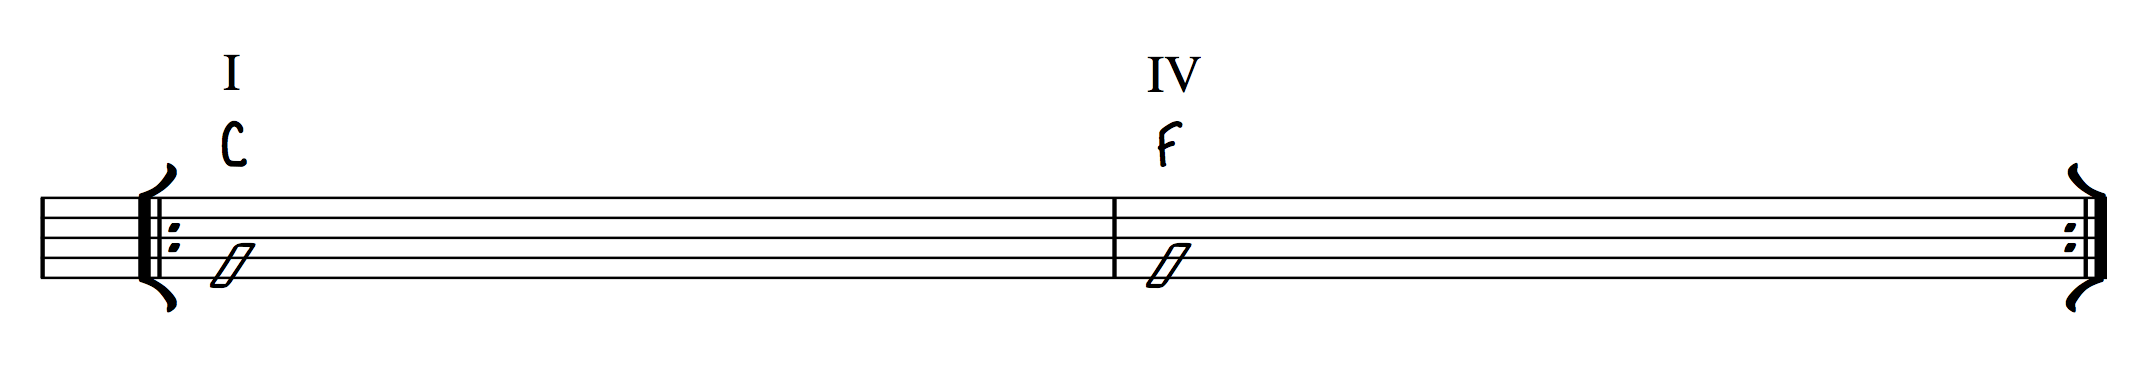 Chord Exercise 1 Chord Functions